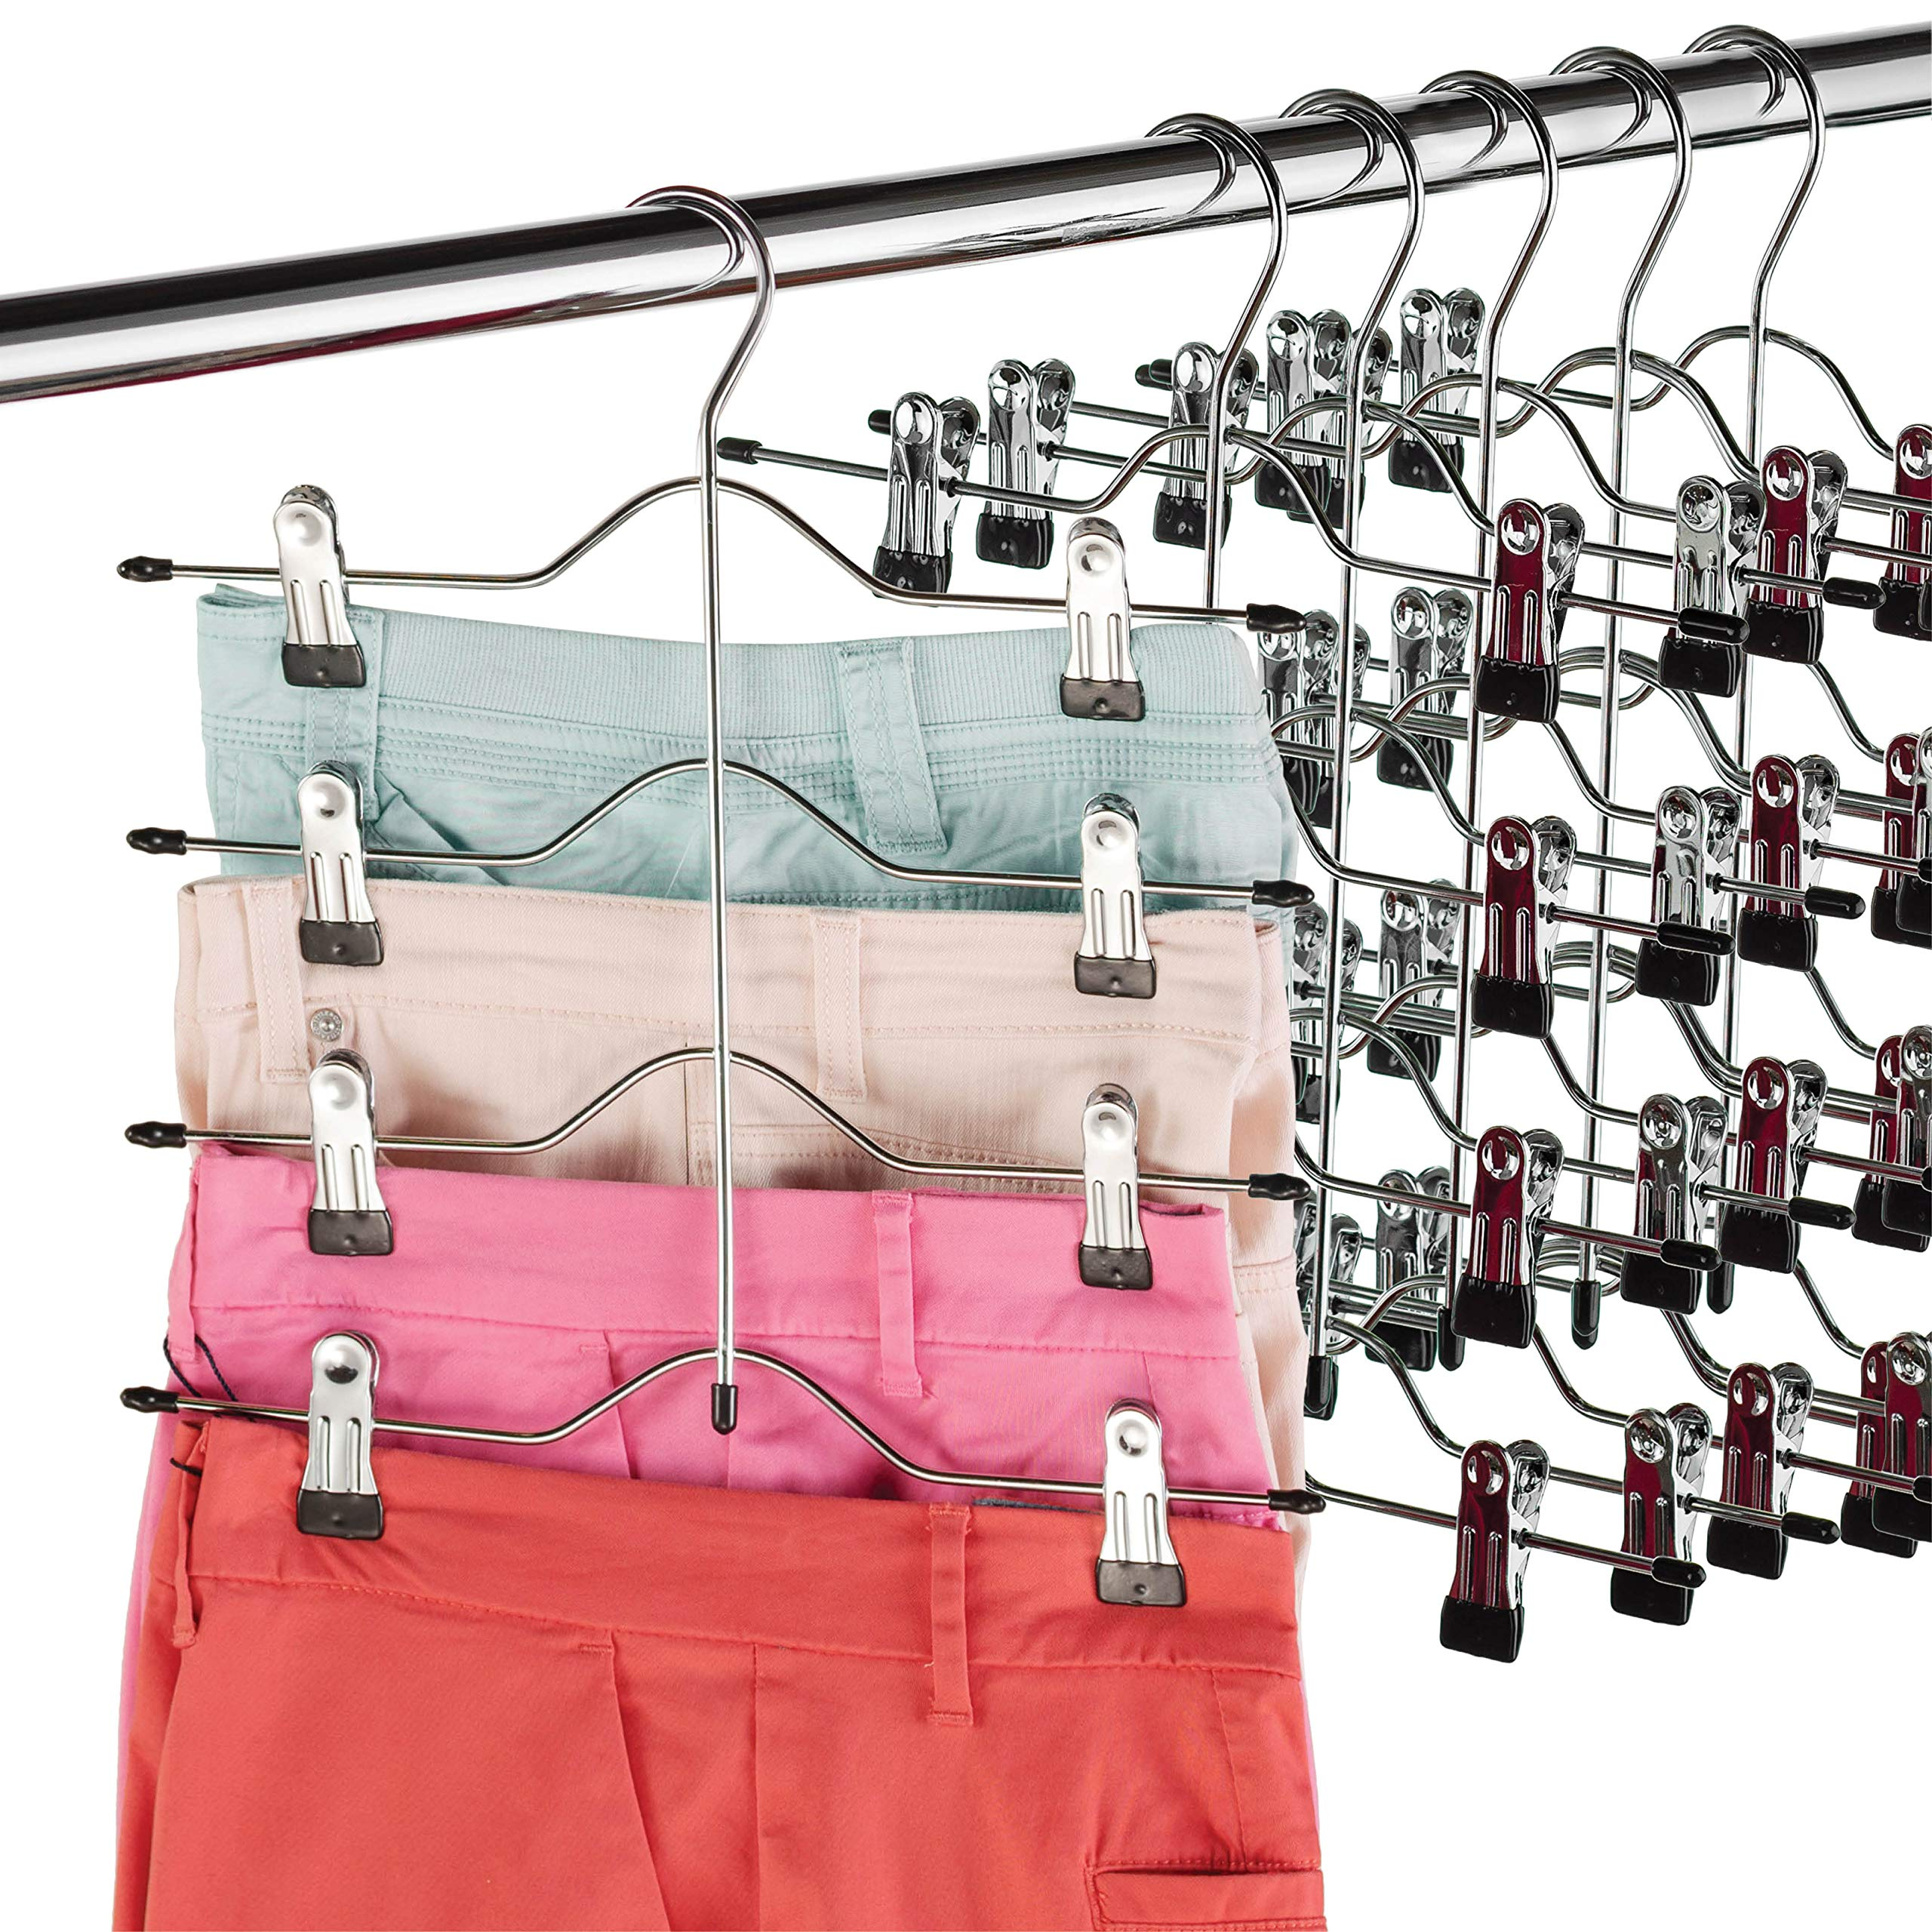 Zober Space Saving 4 Tier Skirt Hanger with Adjustable Clips (6 Pack) 4-on-1 Hanger, GAIN 50% More Space, Reliable Non Slip Grip, Durable Metal Pants Hanger Great for Slack, Trouser, Jeans, Towels Etc by ZOBER